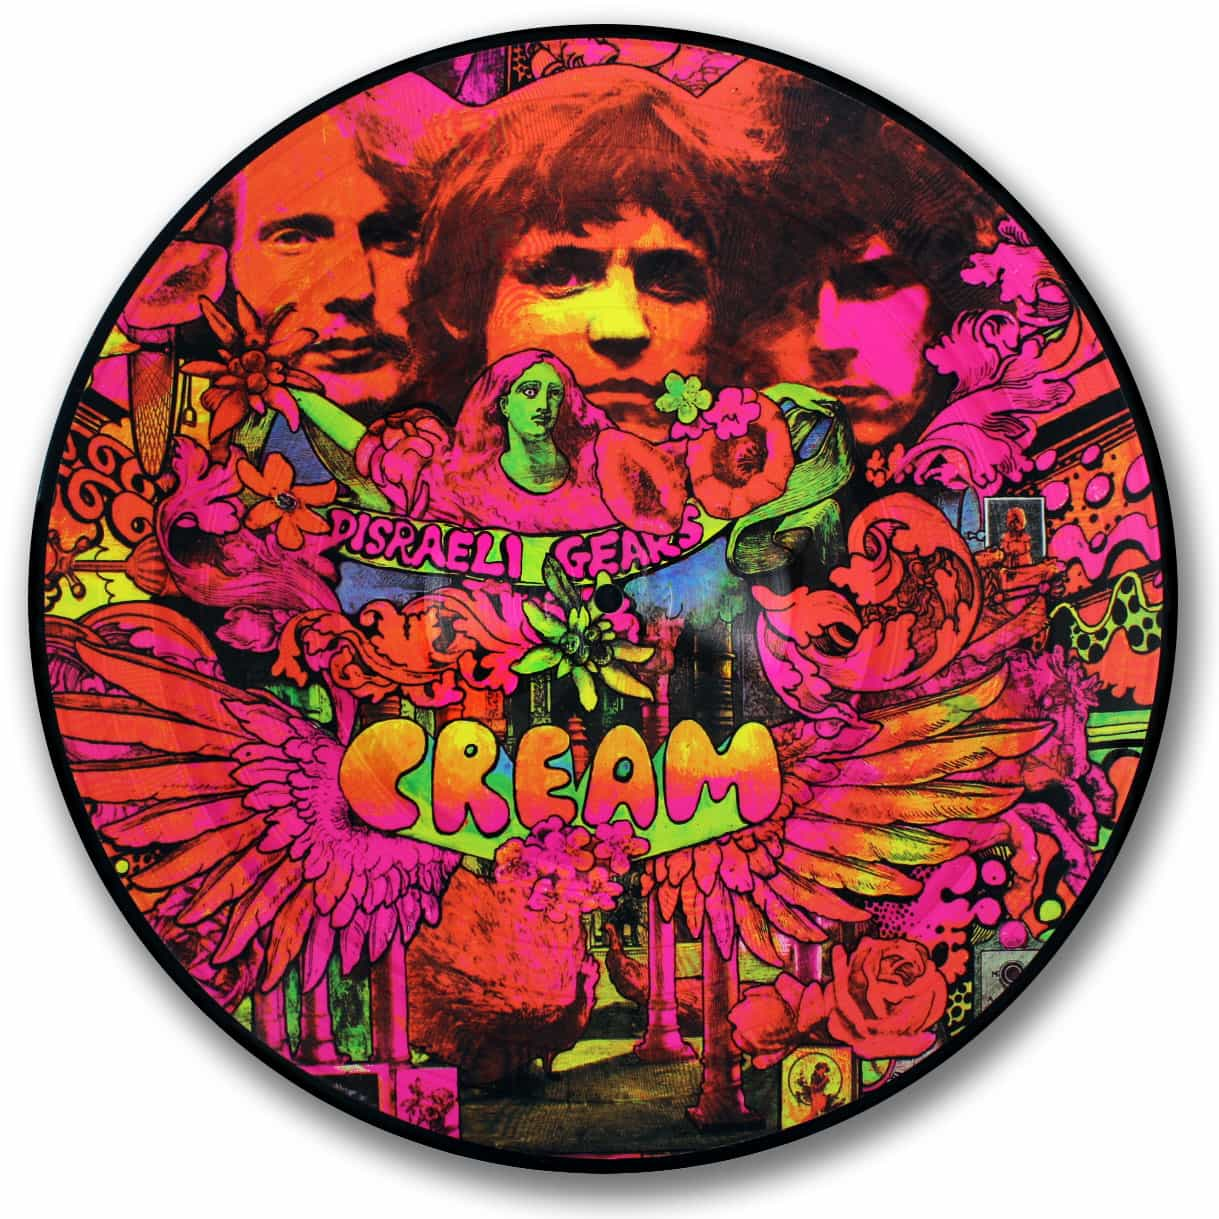 Cream, Disraeli Gears Picture Disc